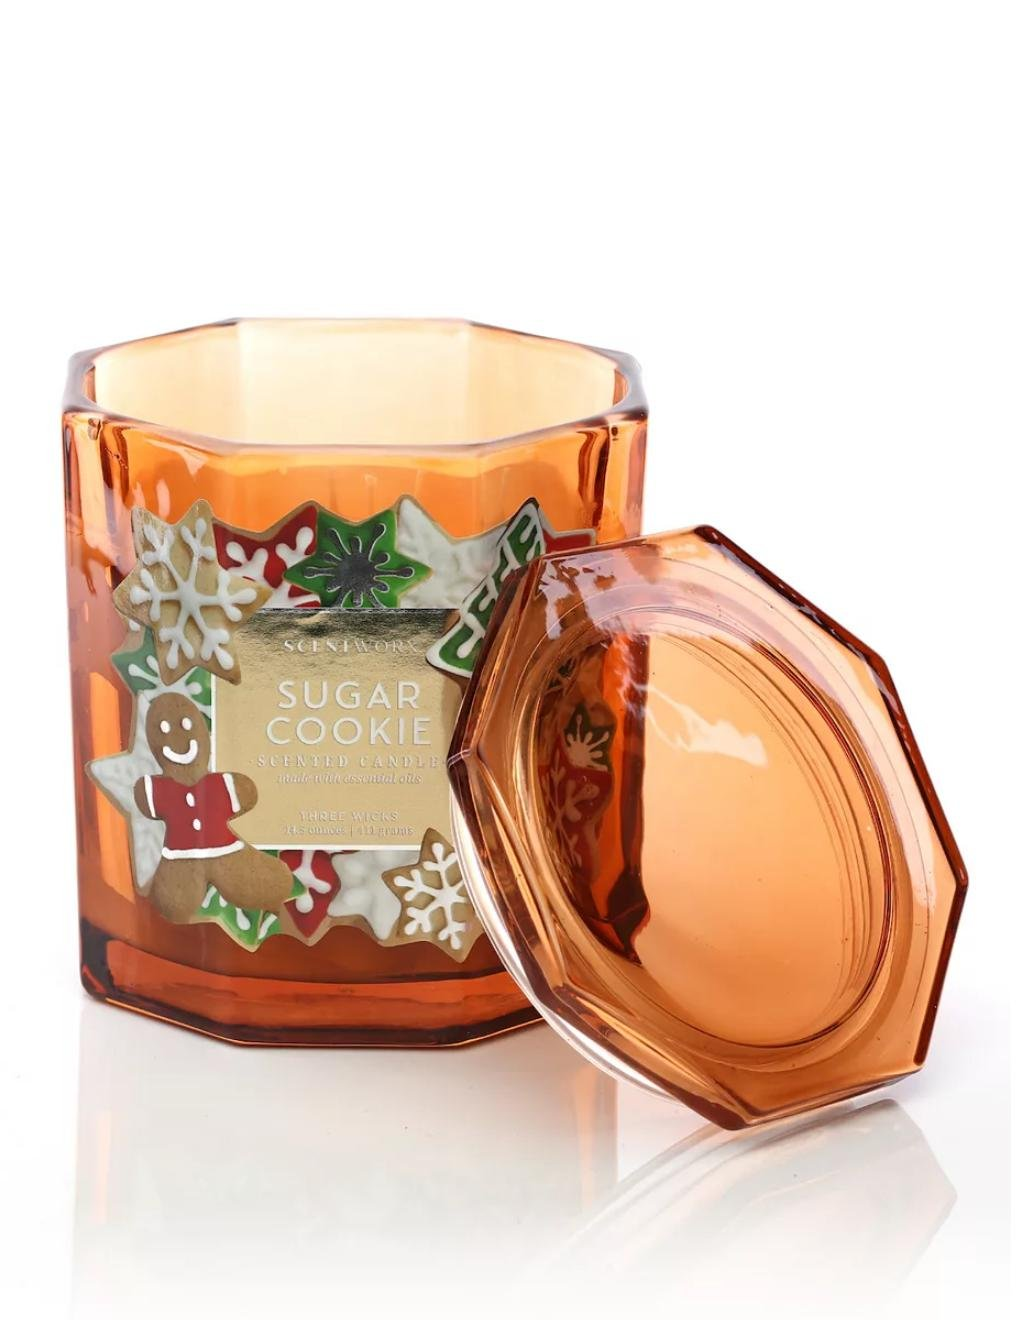 NEW Scentworx by Harry Slatkin Sugar Cookie Scent 14.5-oz. Candle Jar USA Made